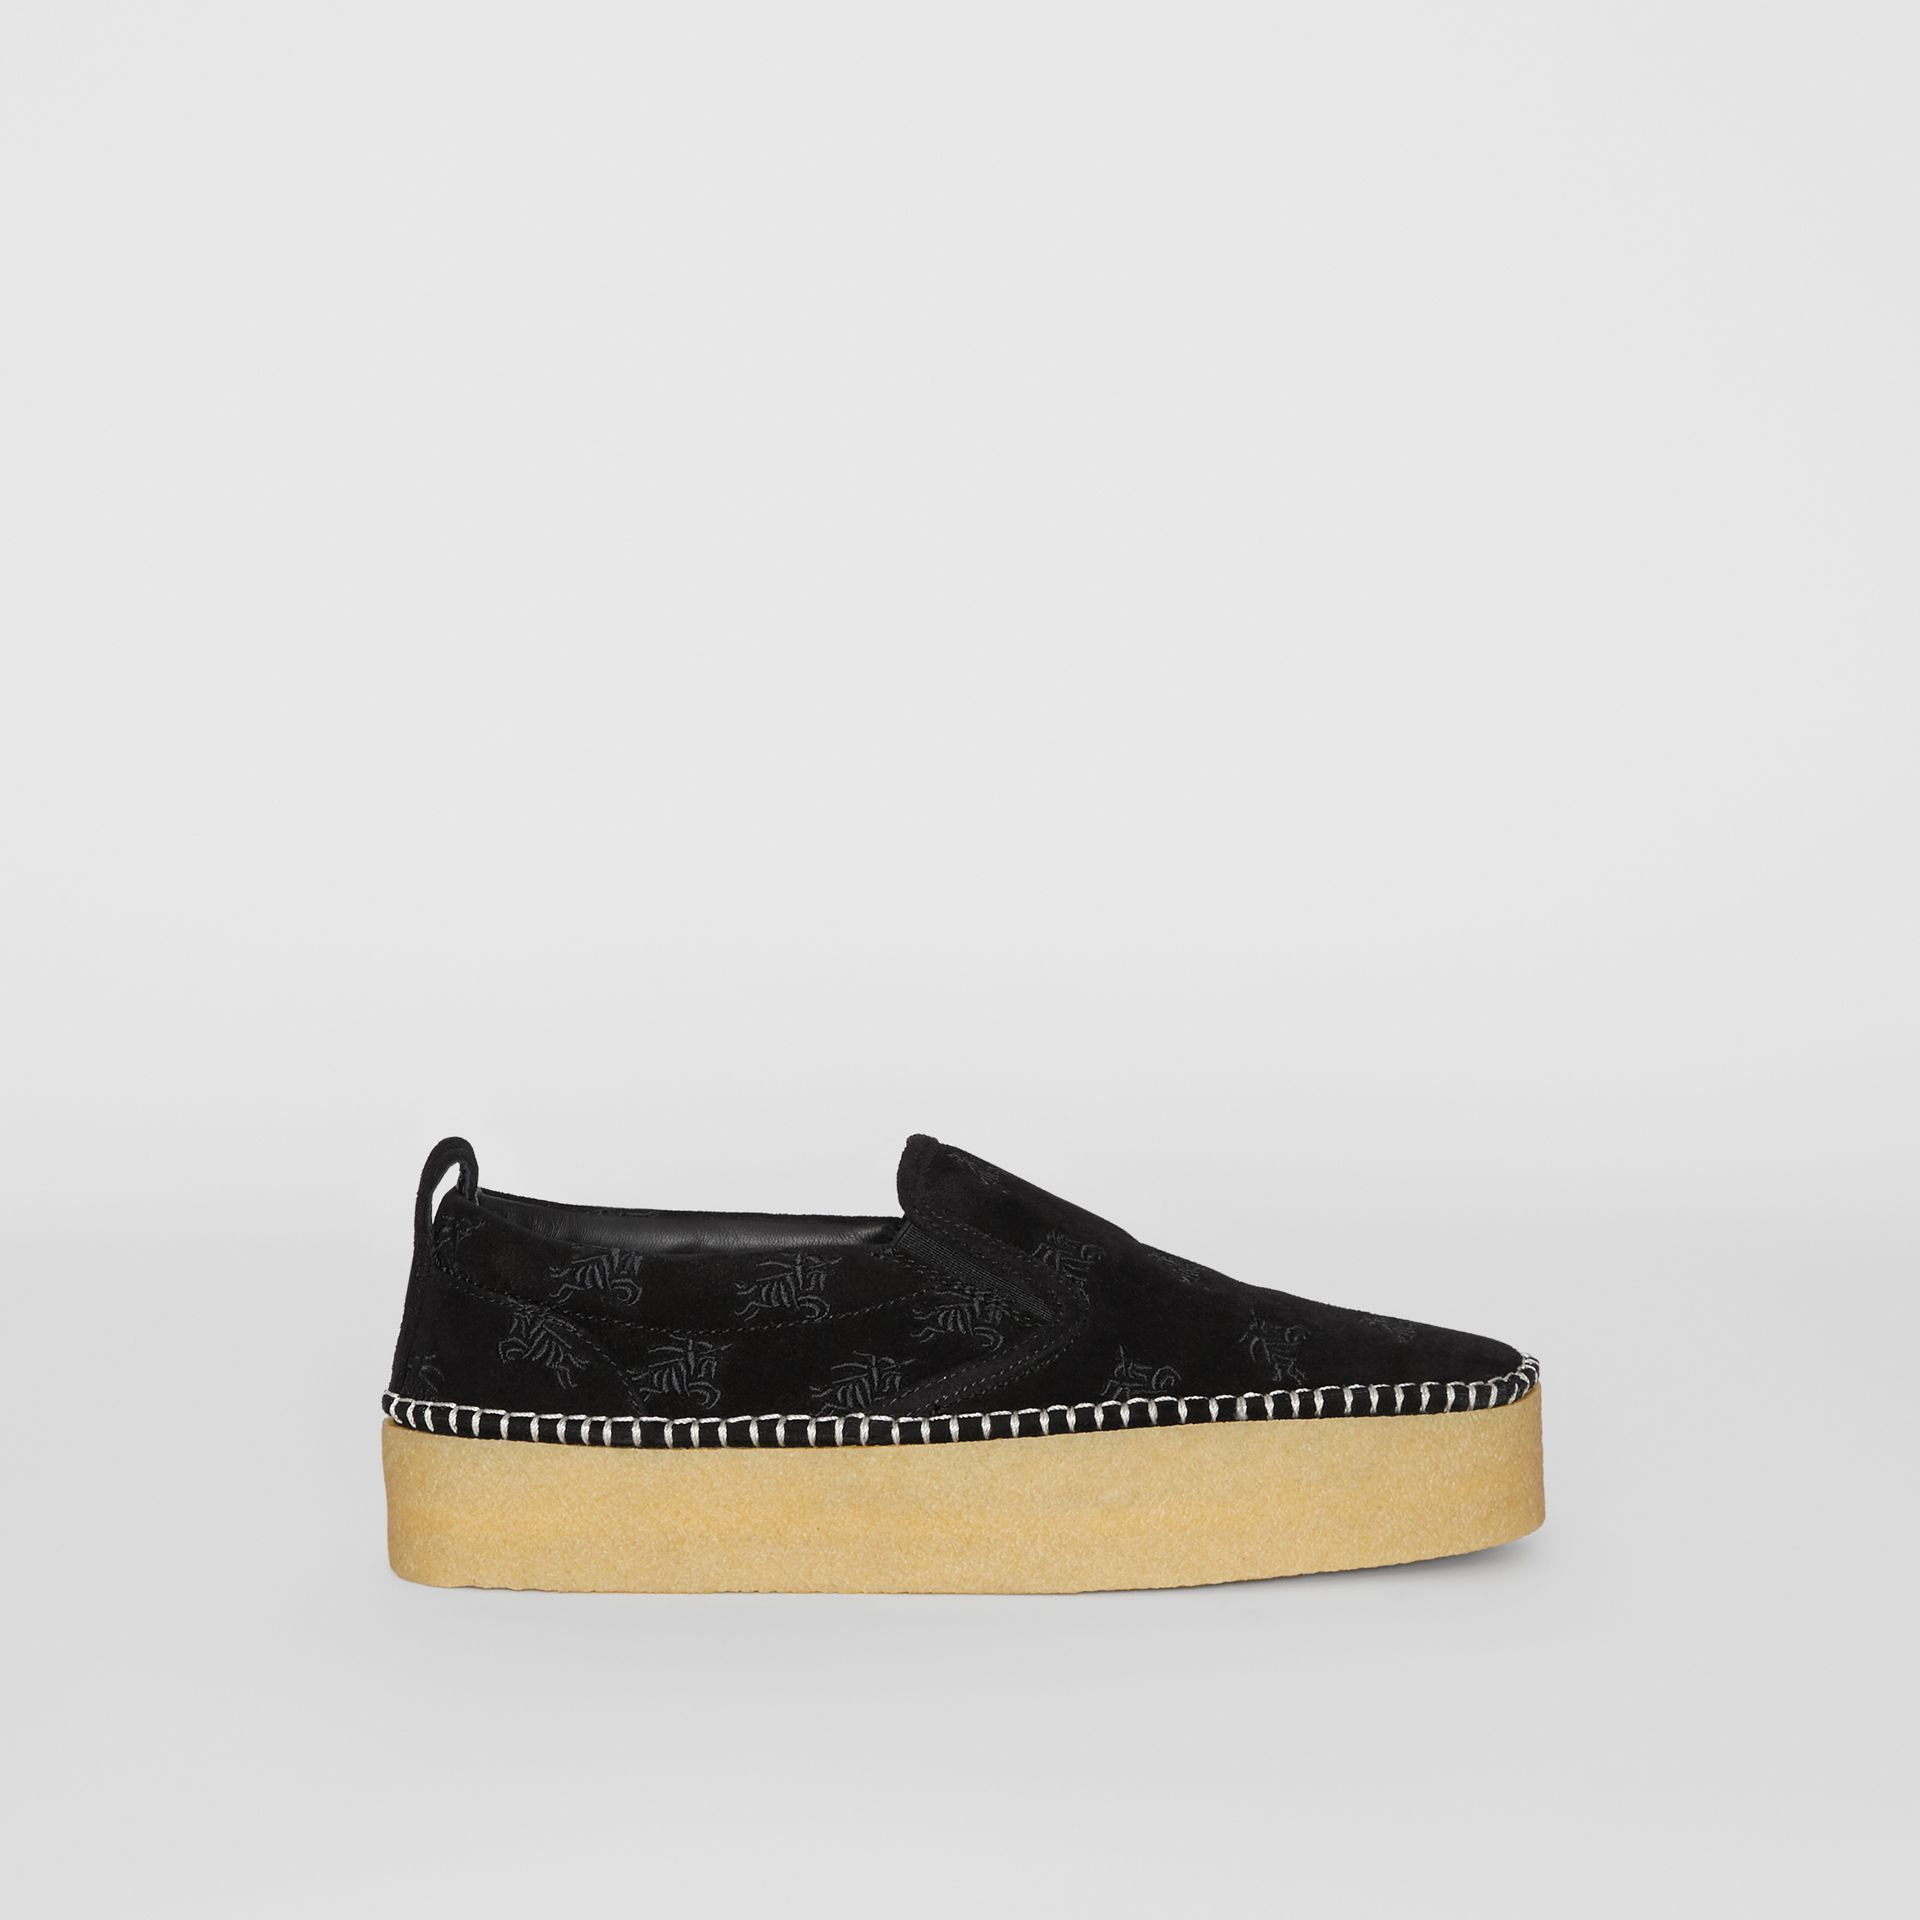 EKD Suede Slip-on Sneakers in Black - Women | Burberry United States - gallery image 5